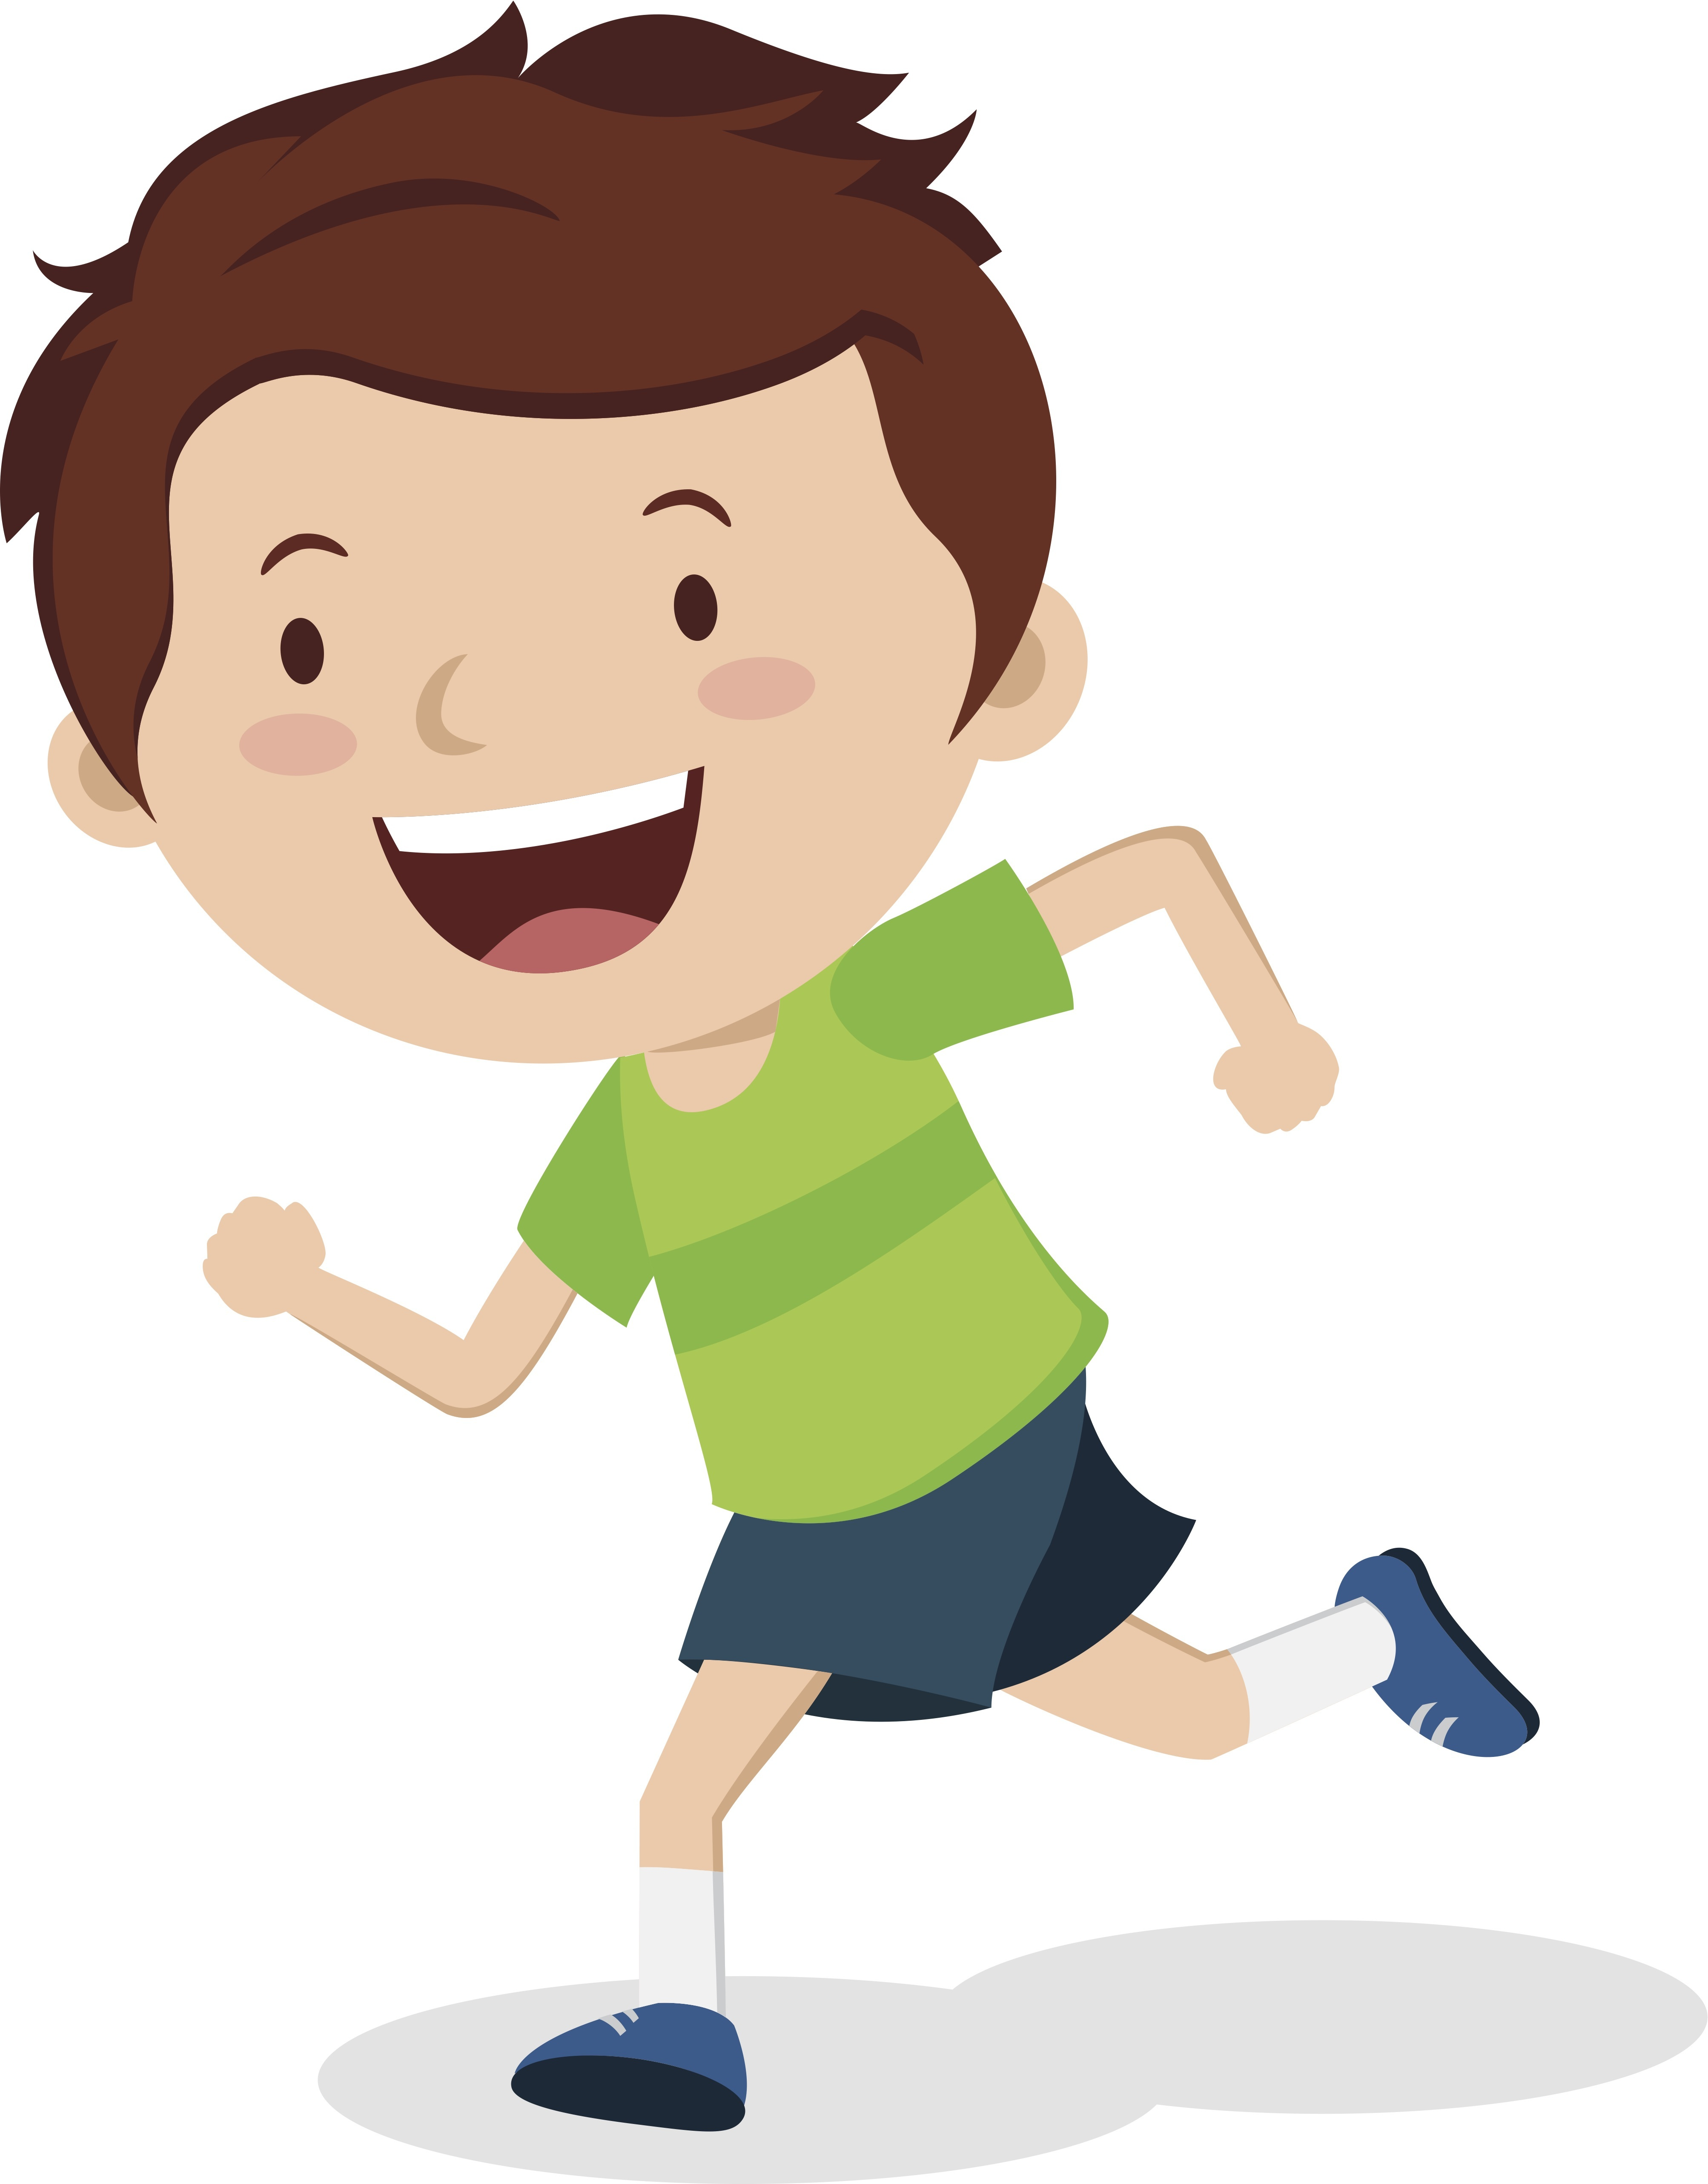 Action clipart run. The importance learning through